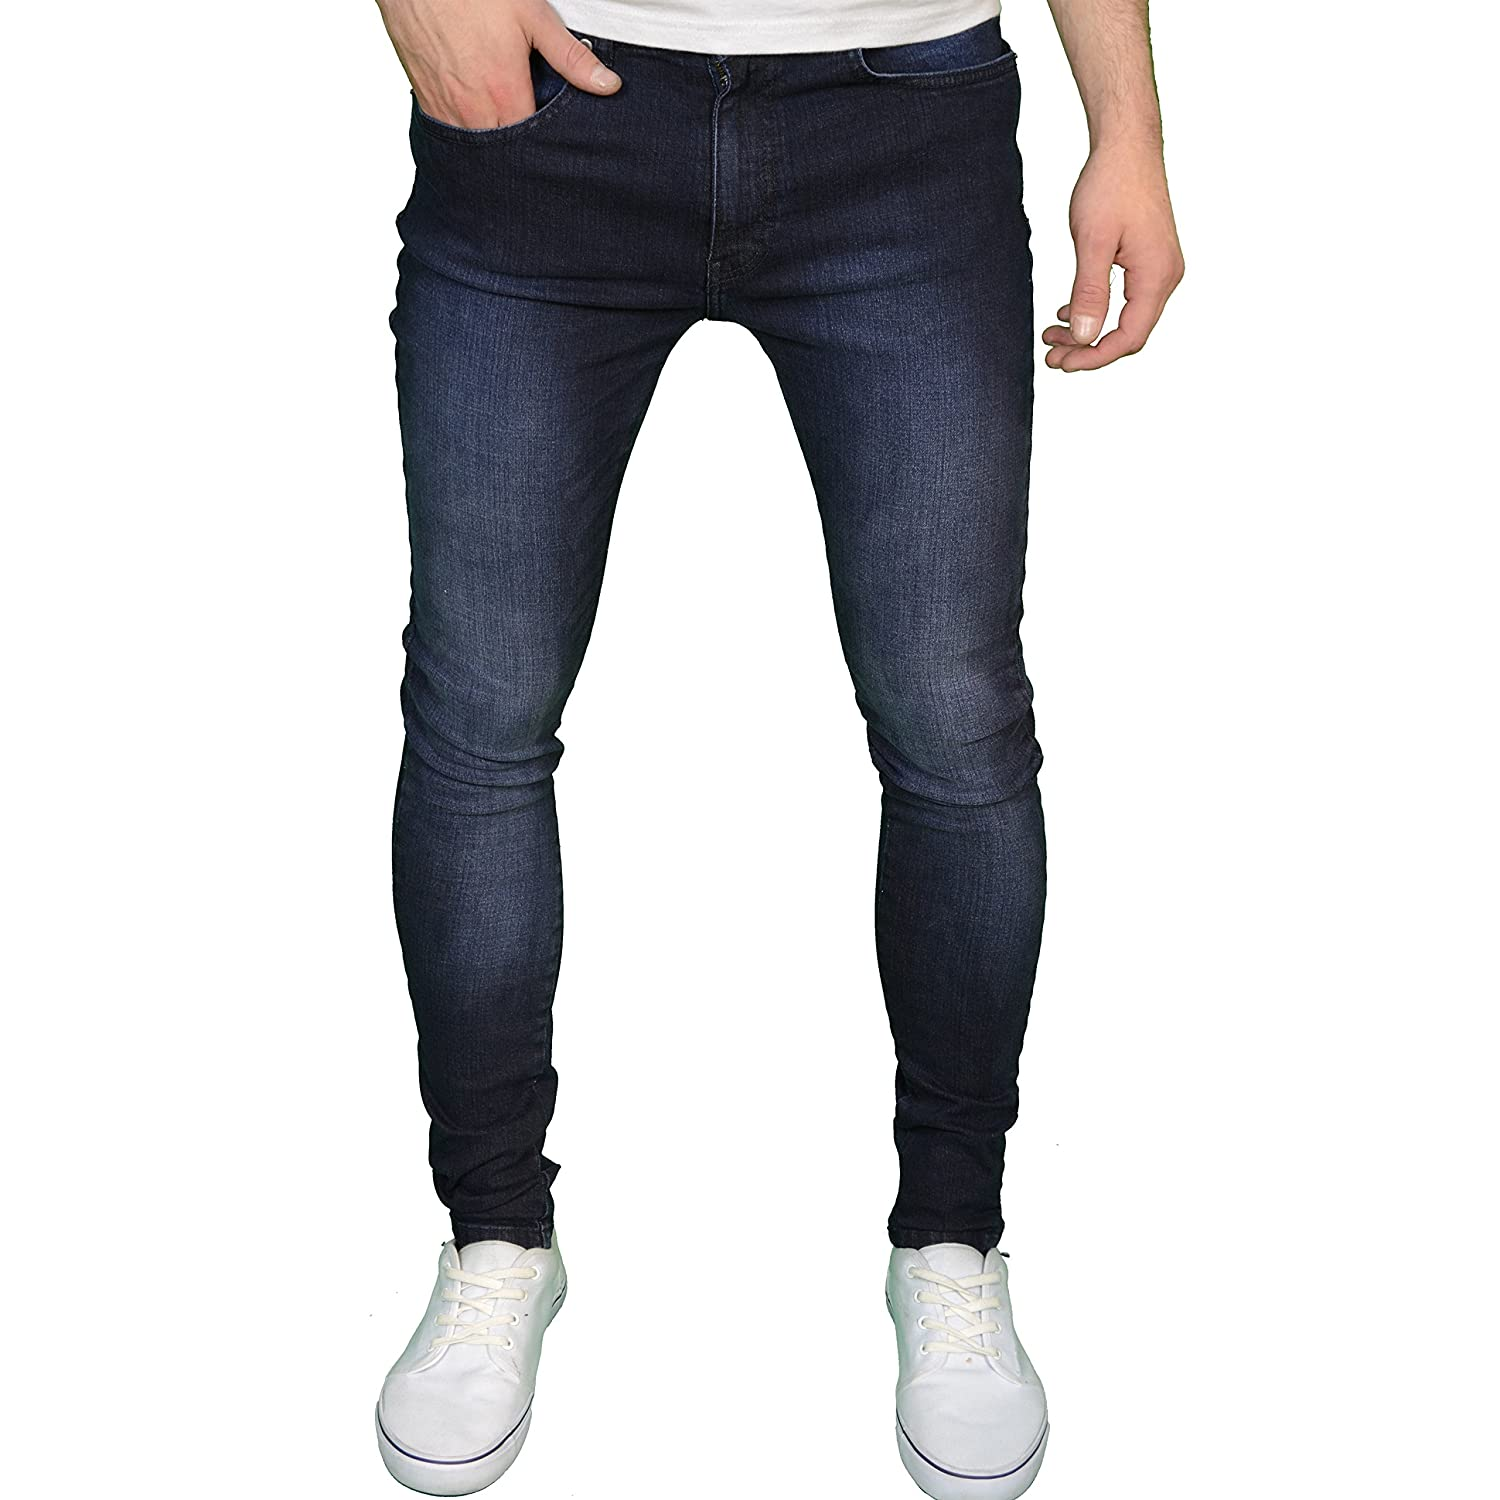 Mens Spray On Skin Tight Skinny Stretch Denim Jeans: Amazon.co.uk ...